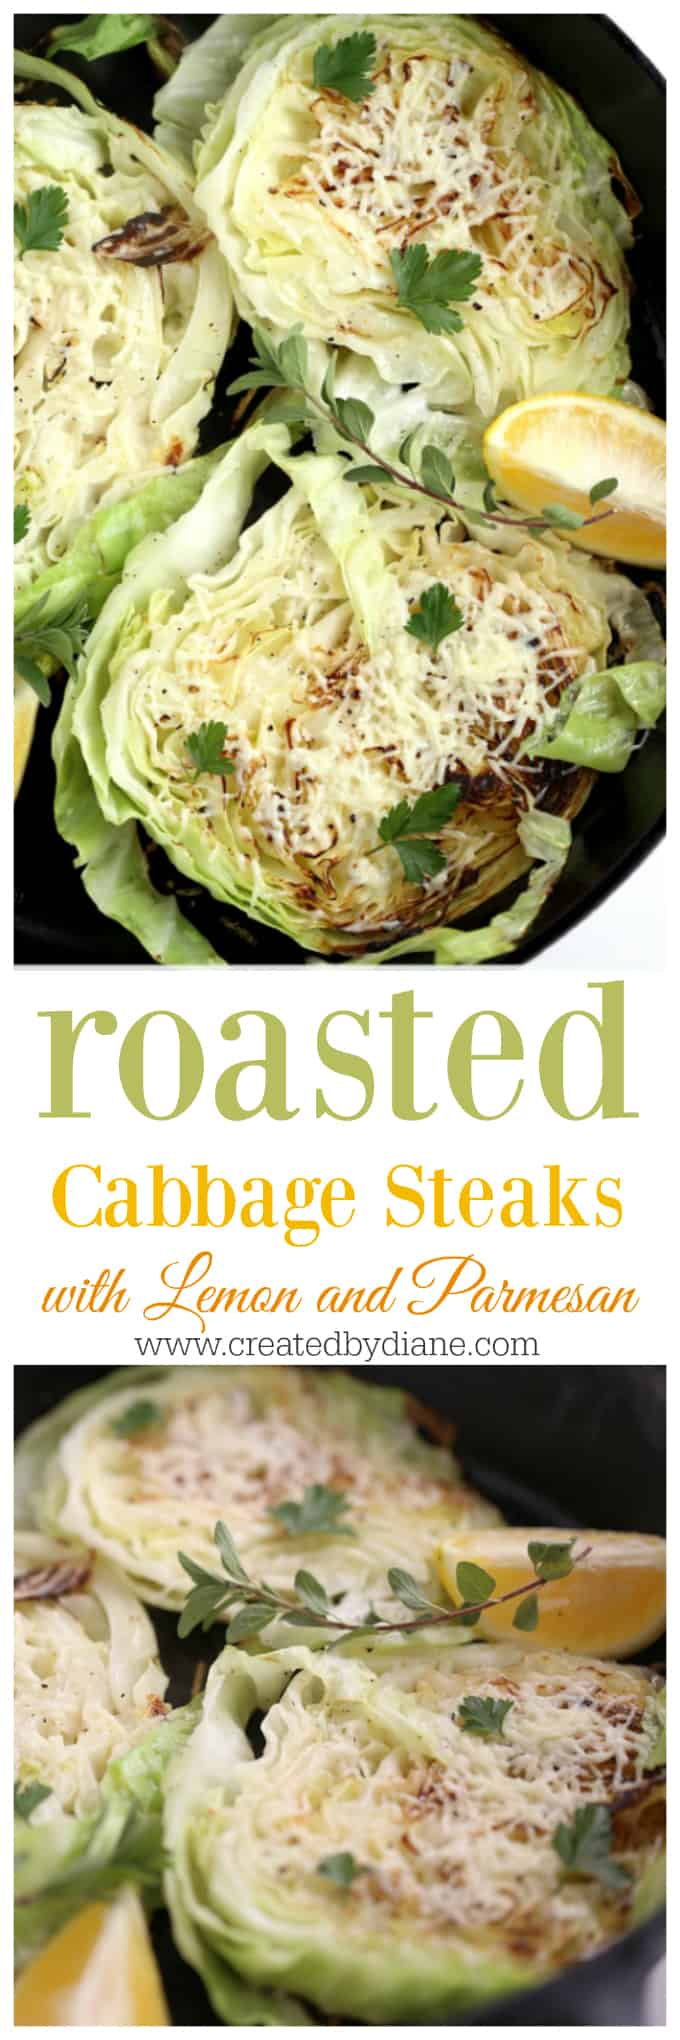 roasted cabbage steaks with lemon and parmesan cheese, a perfect side dish easy and delicious for every dinner www.createdbydiane.com